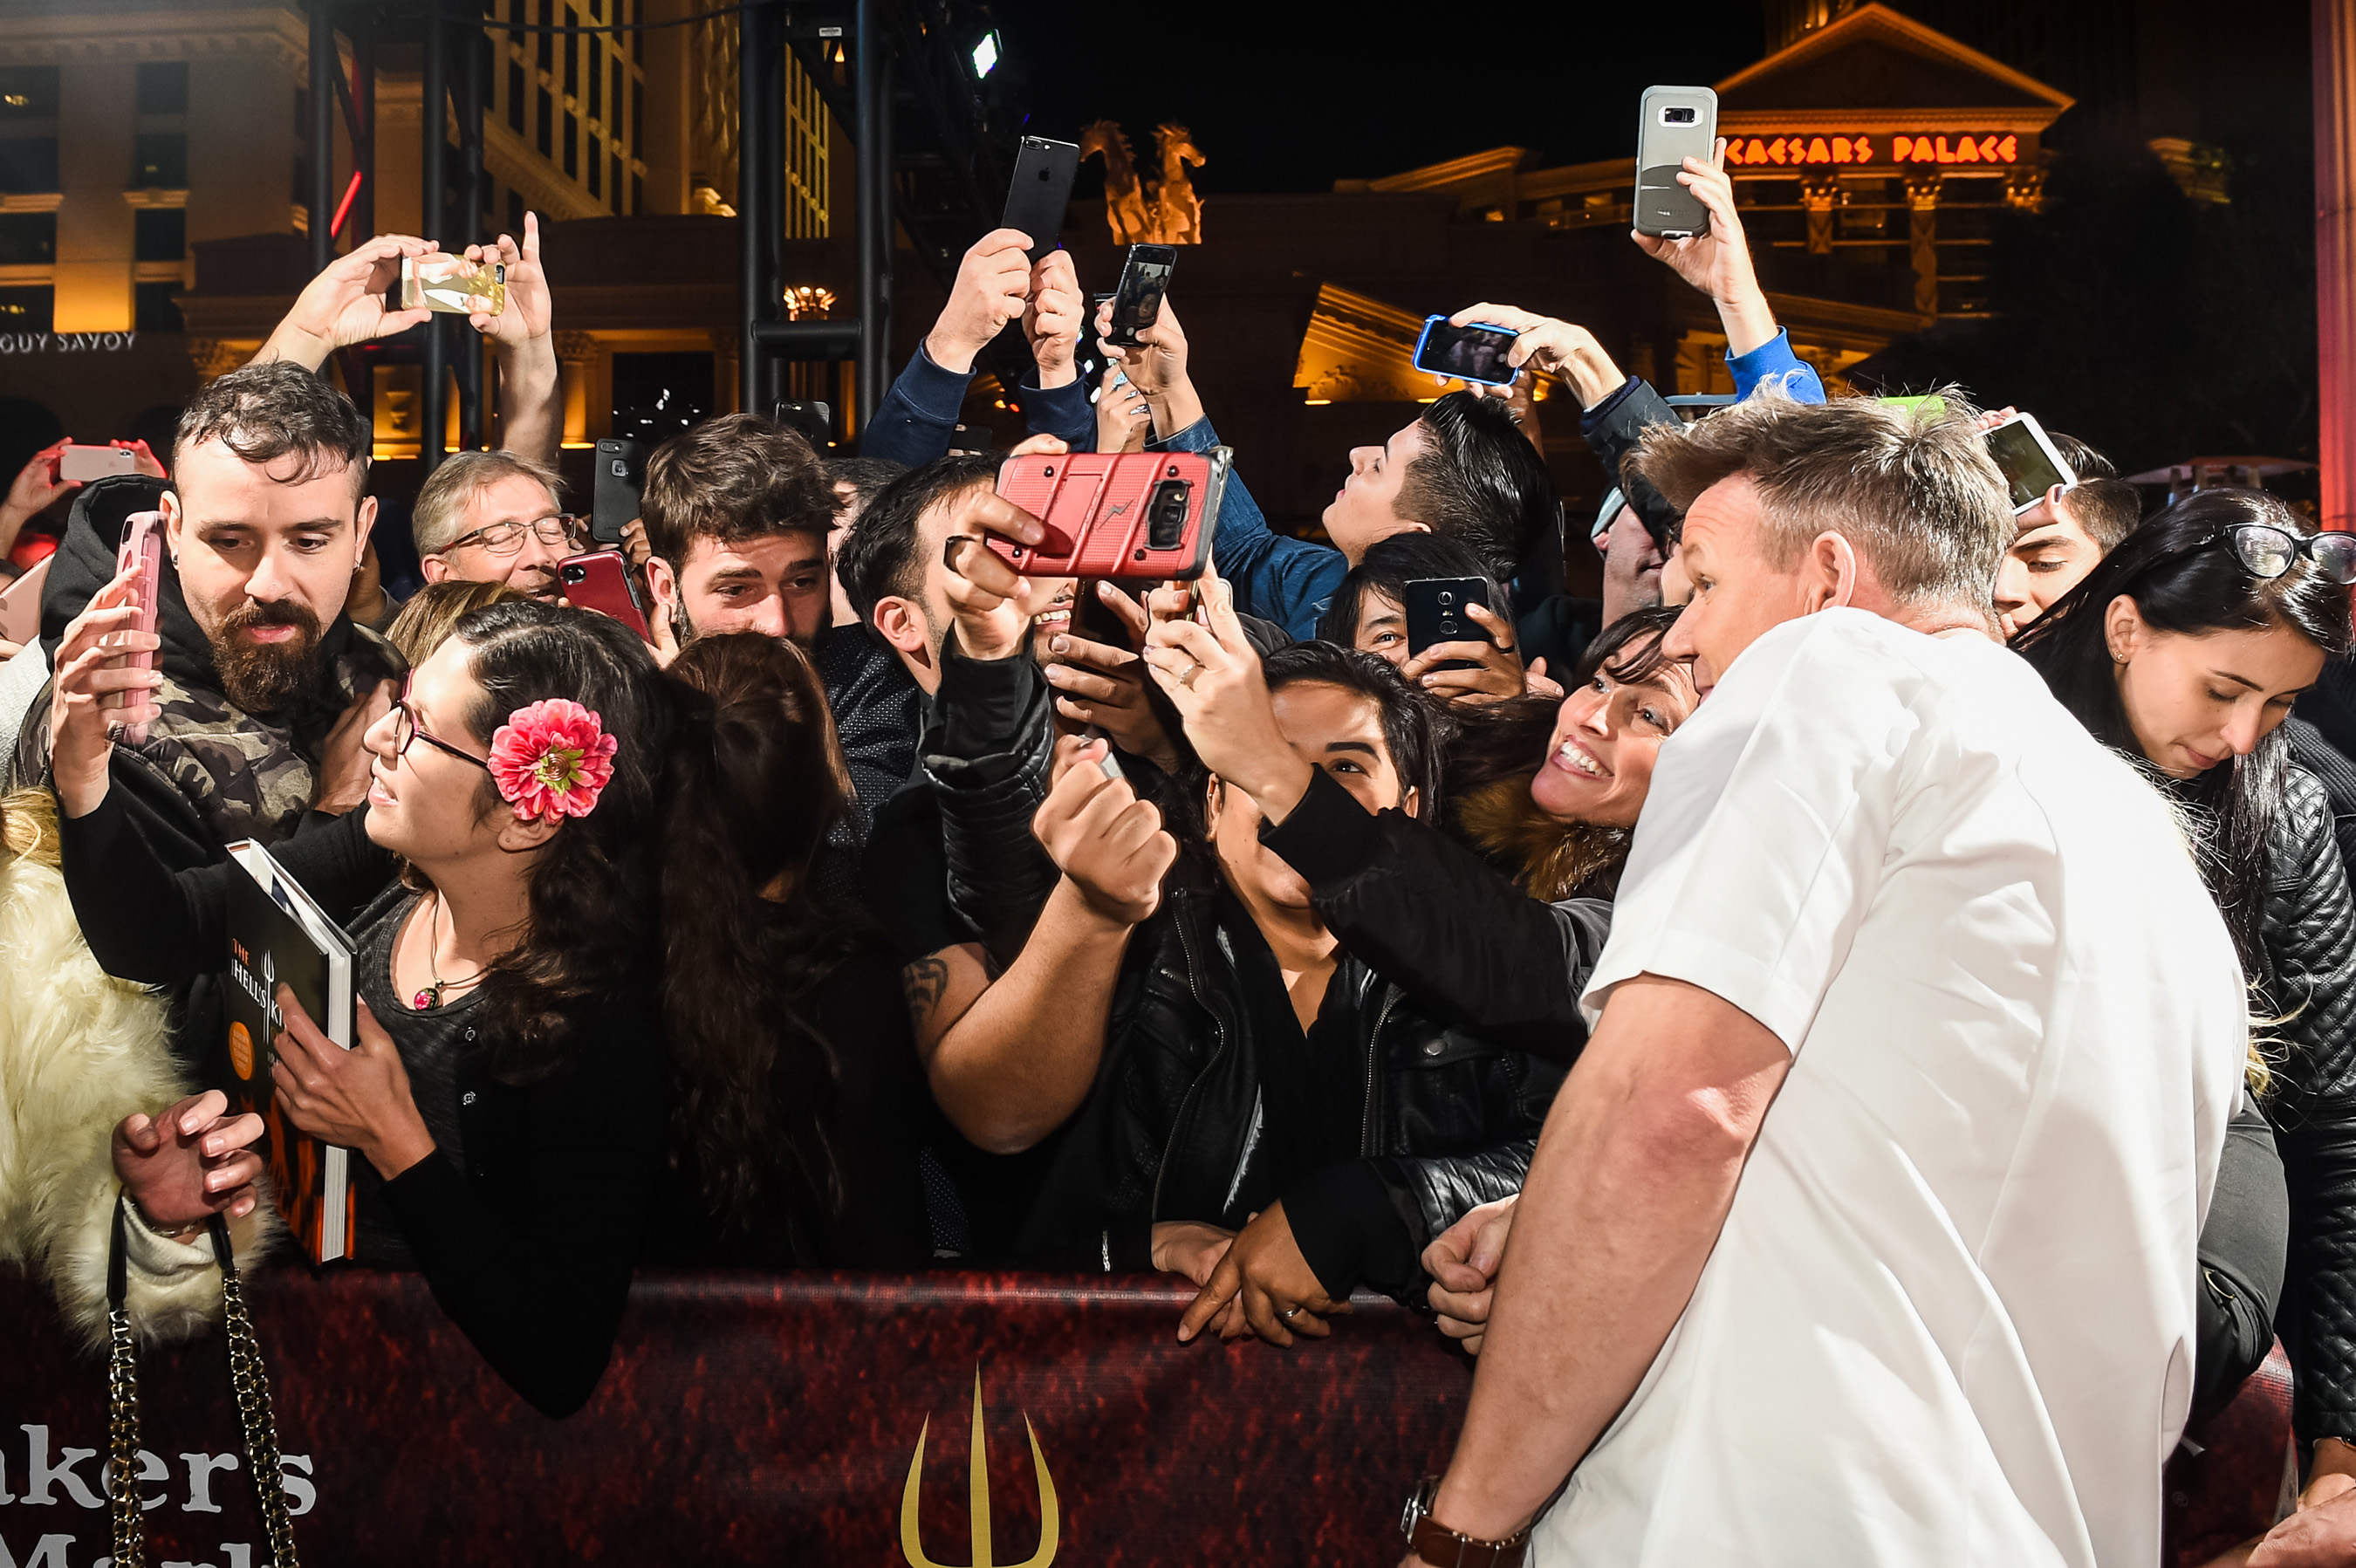 Chef Gordon Ramsay poses for selfies with fans during the grand opening celebration of the world's first Gordon Ramsay HELL'S KITCHEN restaurant at Caesars Palace in Las Vegas. Photo Credit: © Brenton Ho/ KabikPhotoGroup.com